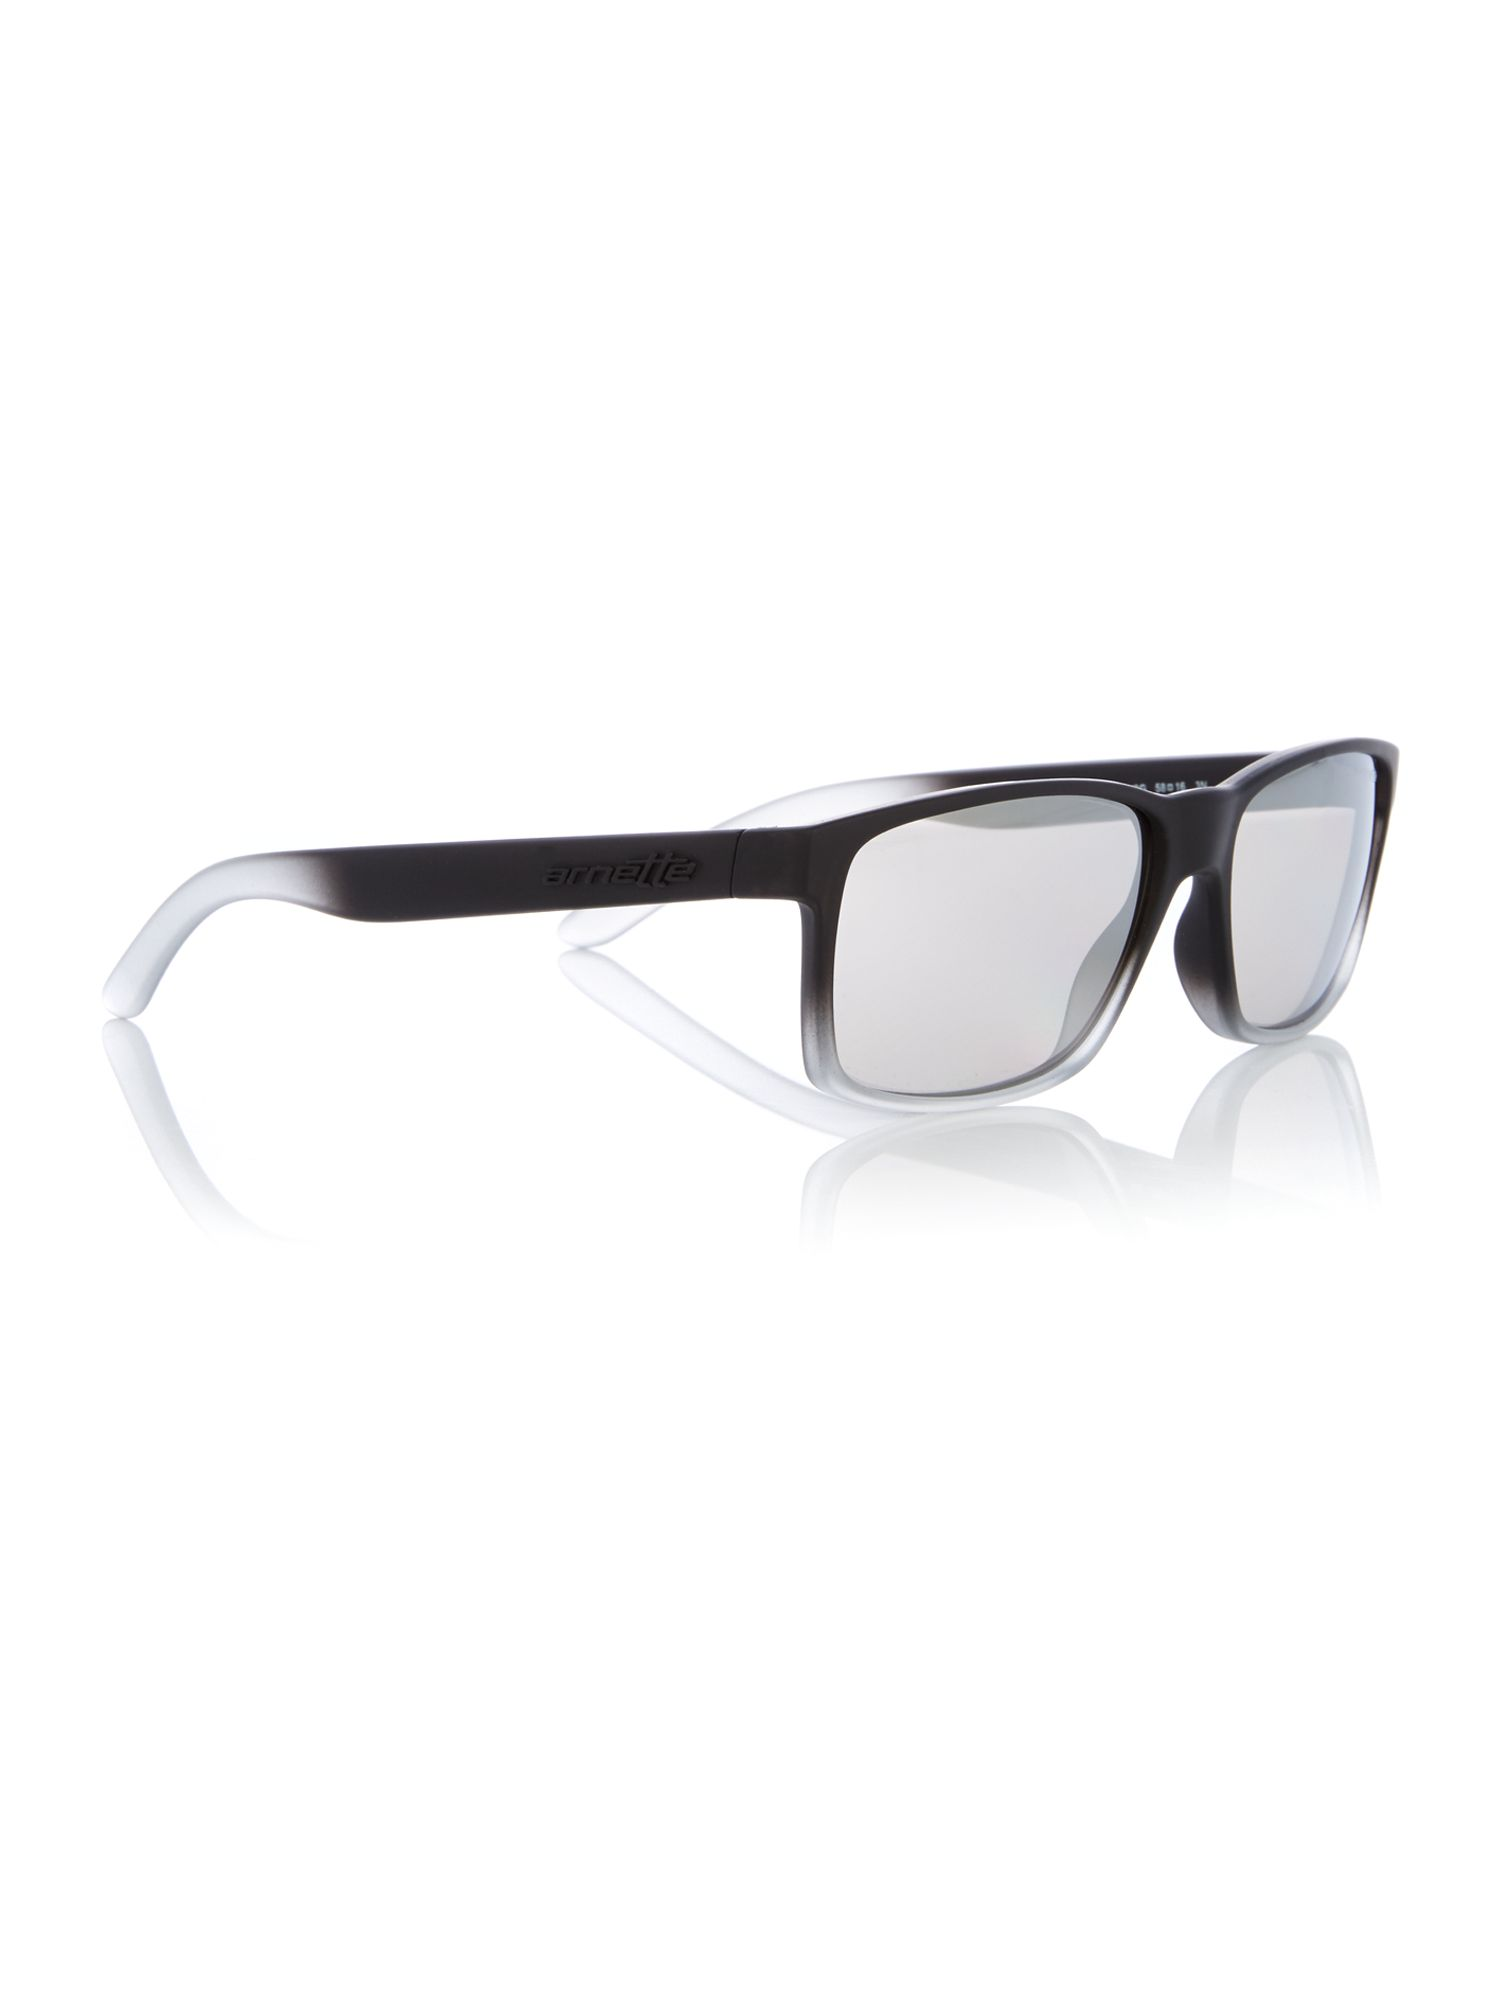 Arnette AN4185 rectangle sunglasses